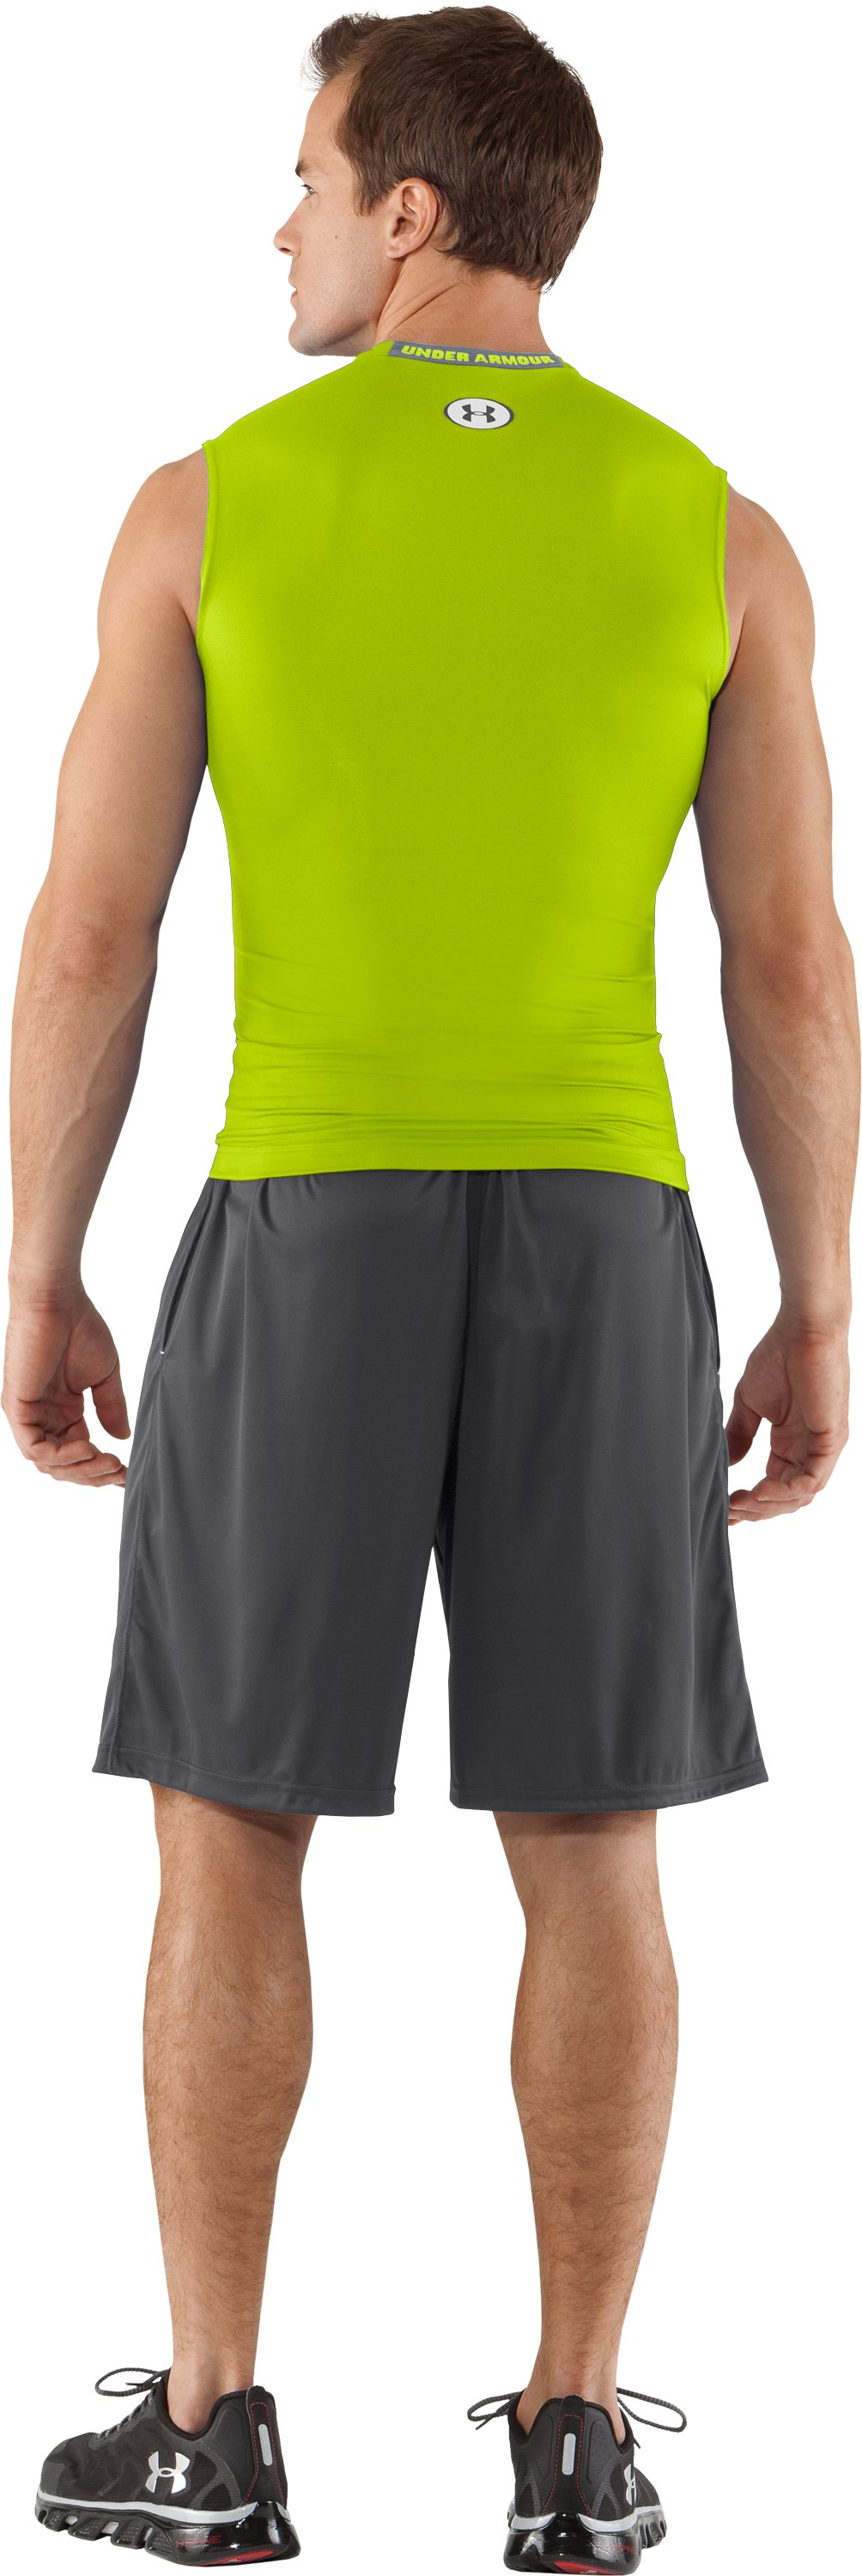 Men's HeatGear® Sonic Compression Sleeveless, Velocity, Back